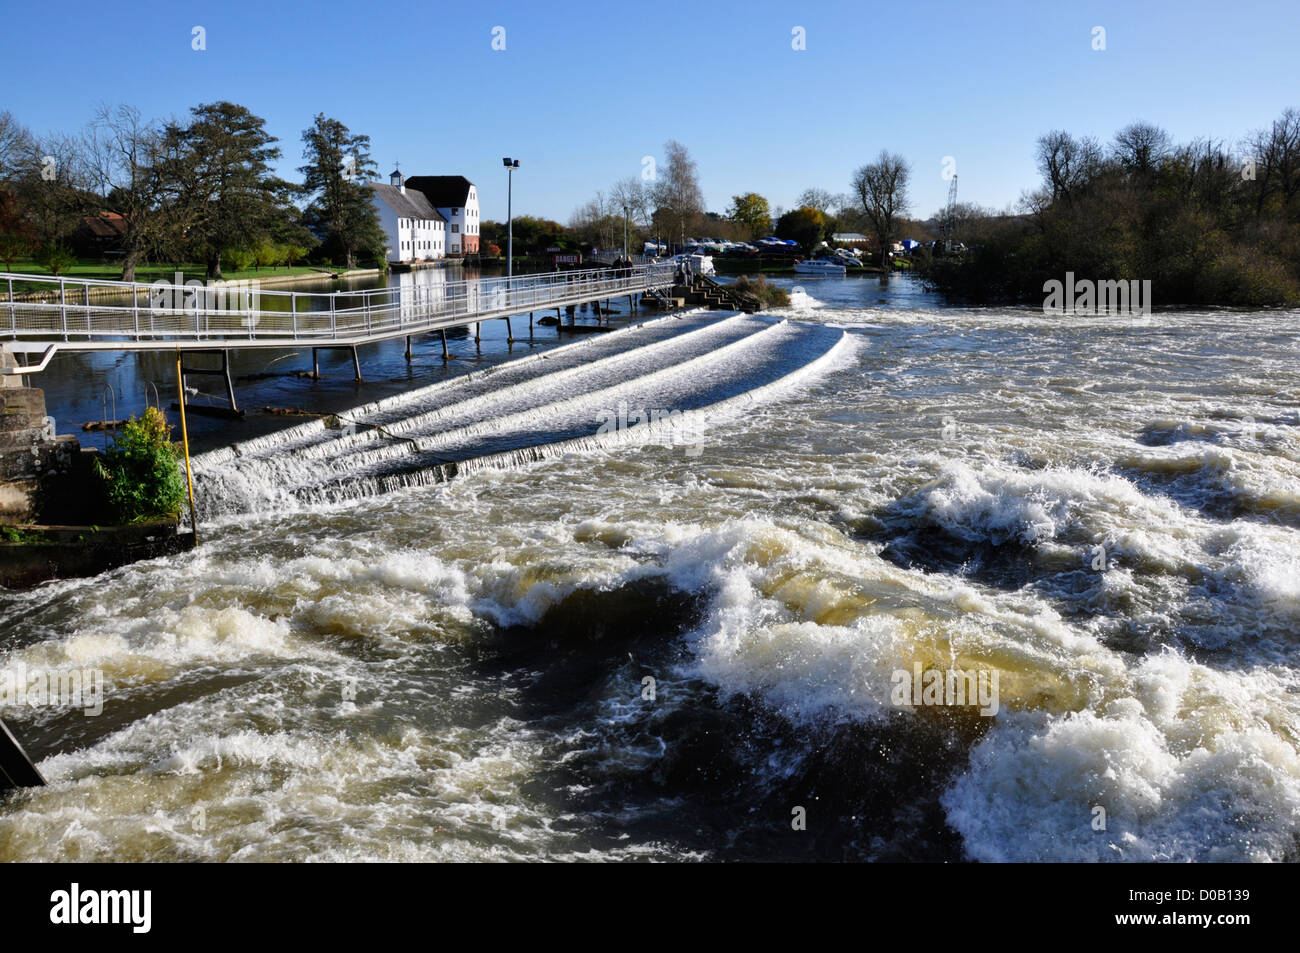 Bucks - Hambleden Mill End - surging water over the Thames weir - creating a rough white water tail - bright winter - Stock Image